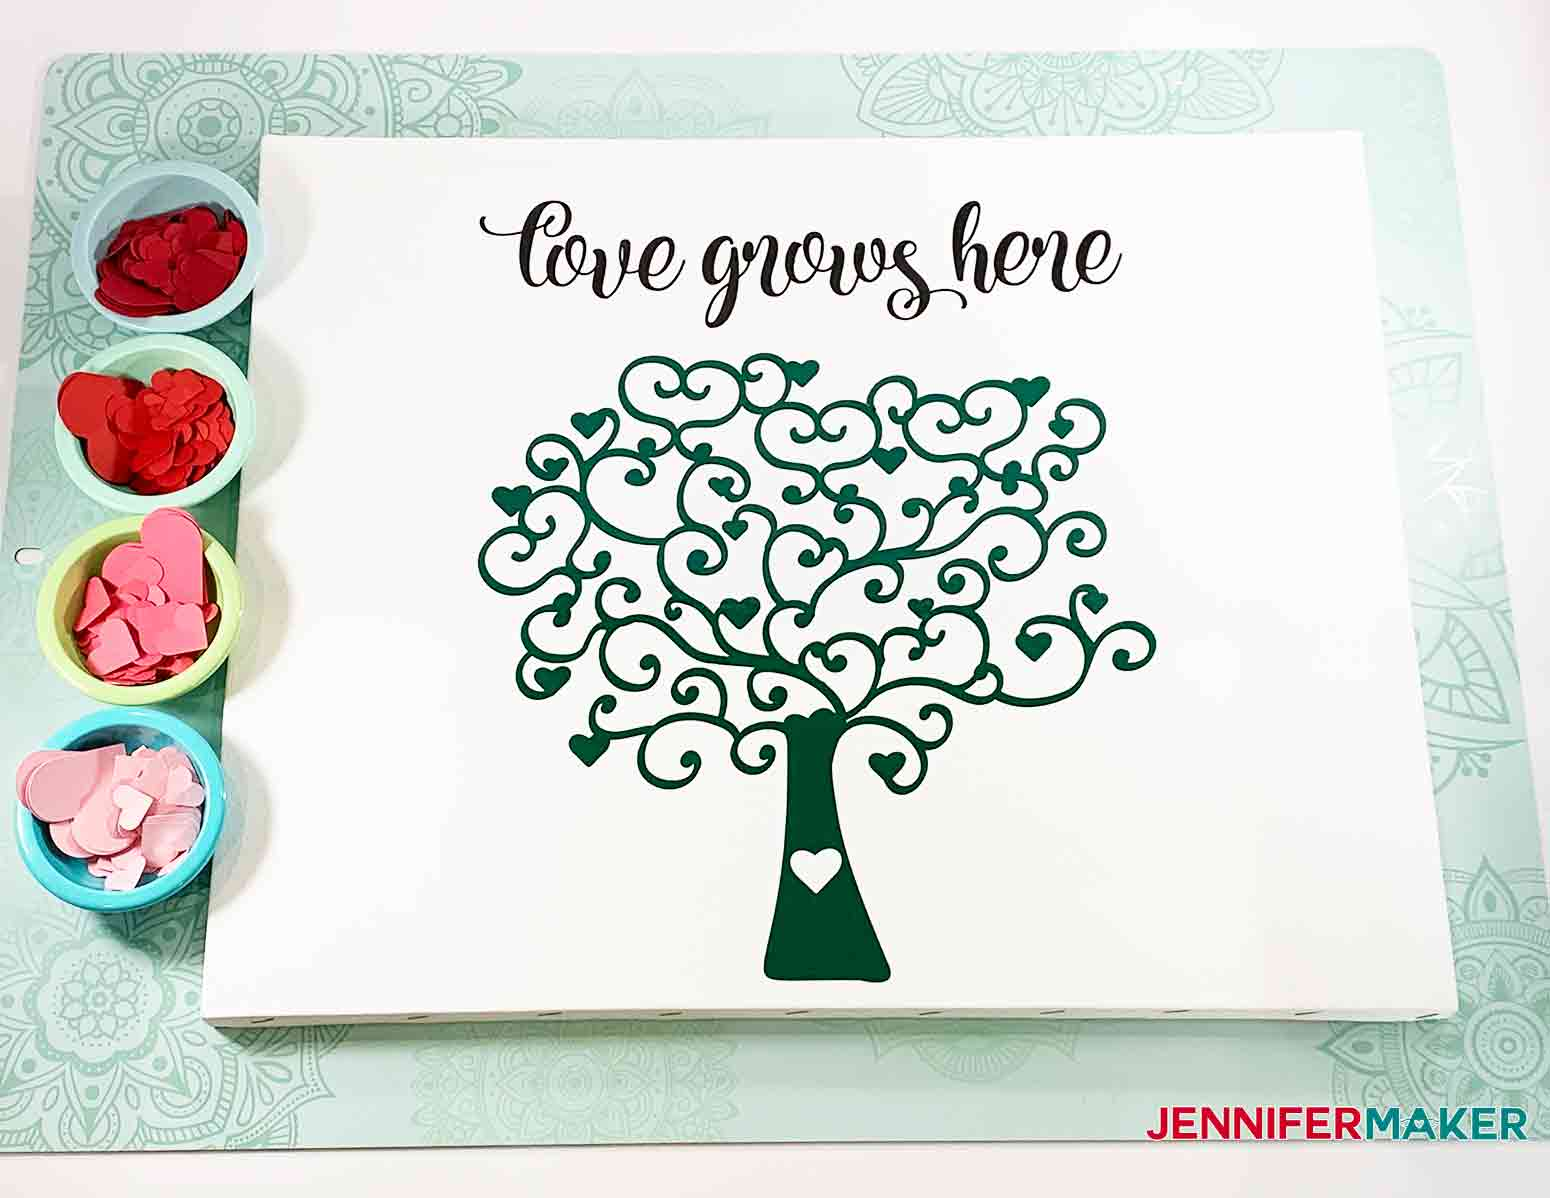 Vinyl Tree and Quote on canvas for Easy Paper Heart Tree by JenniferMaker